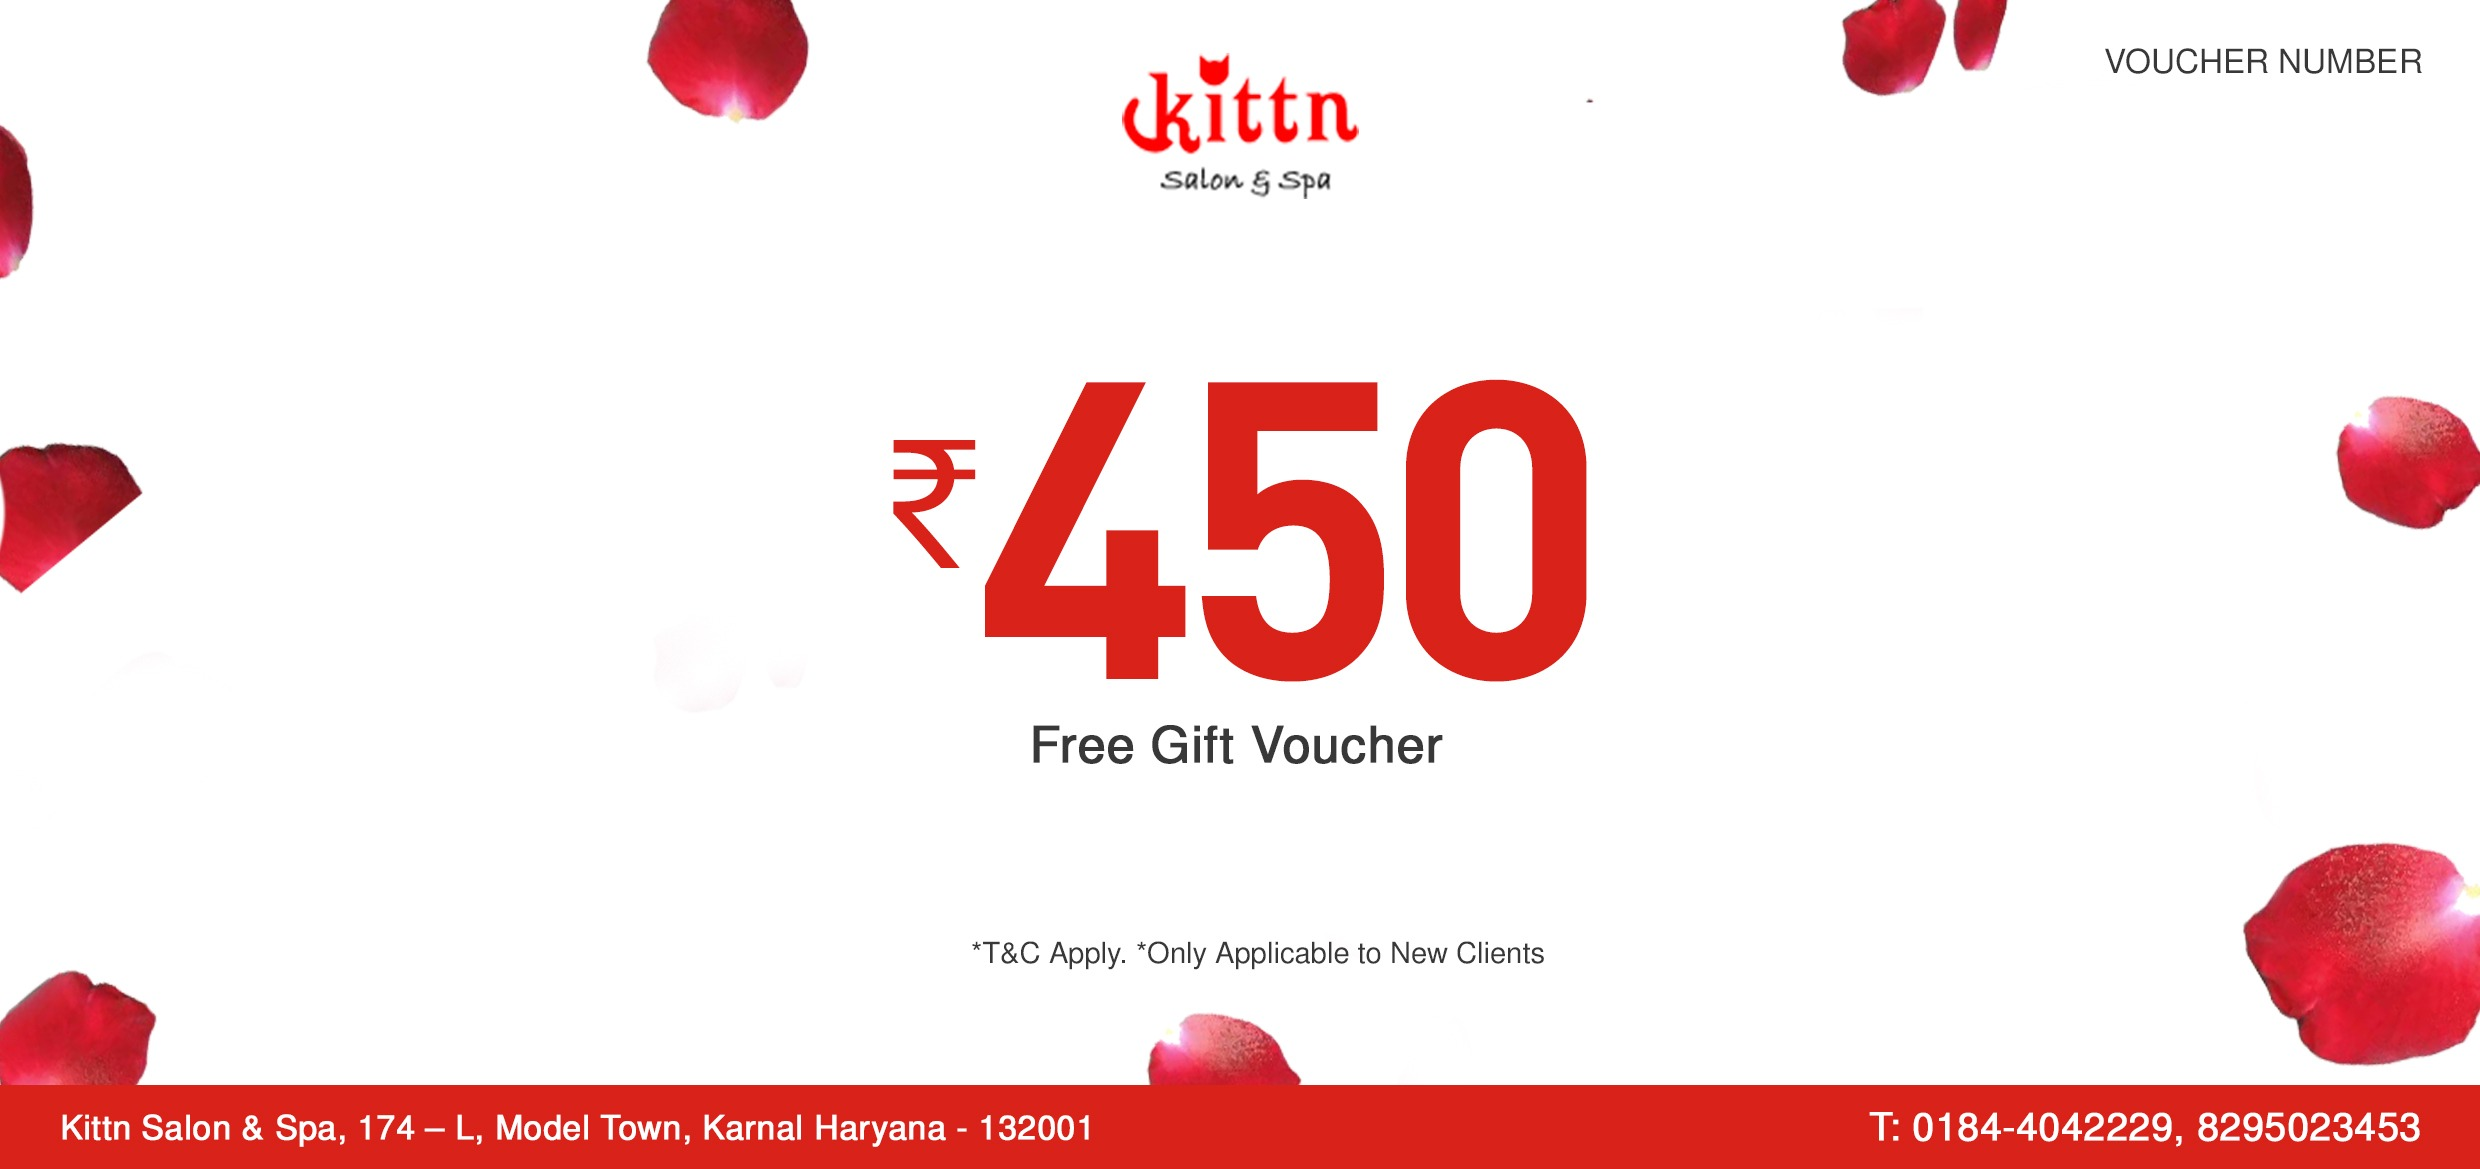 Voucher template applicable pictures gift termination letter free 450 gift voucher for new clients kittn salon spa voucher template 450 free free yadclub Image collections